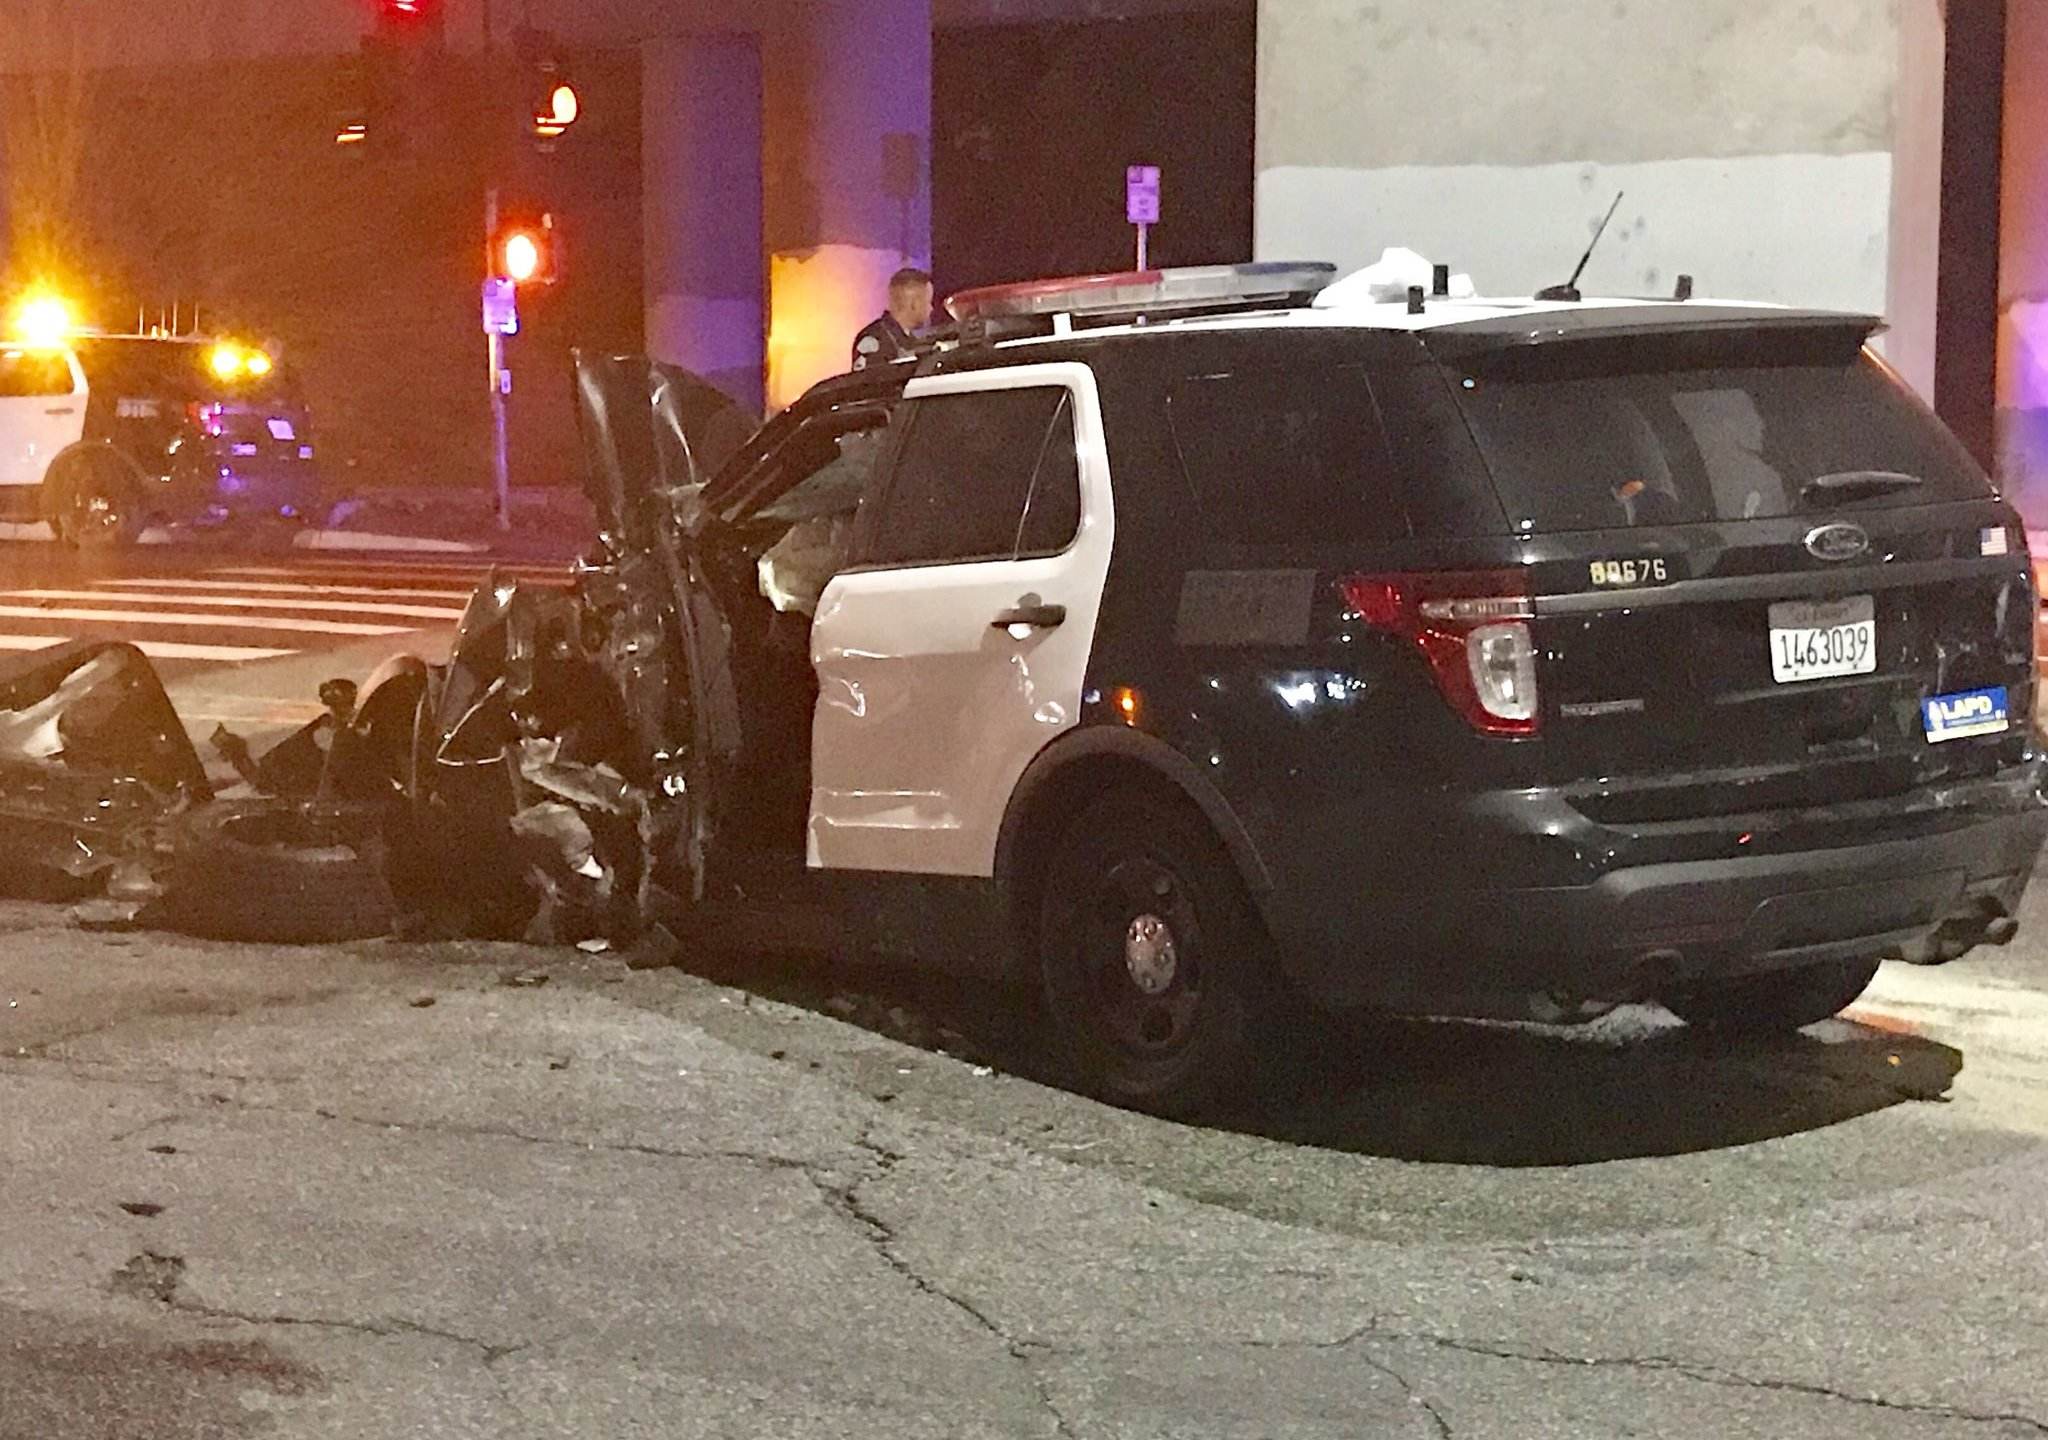 A Los Angeles police sergeant was injured in a hit-and-run involving a domestic violence suspect on June 26, 2018. (Credit: Officer Kenny Lew via Twitter)